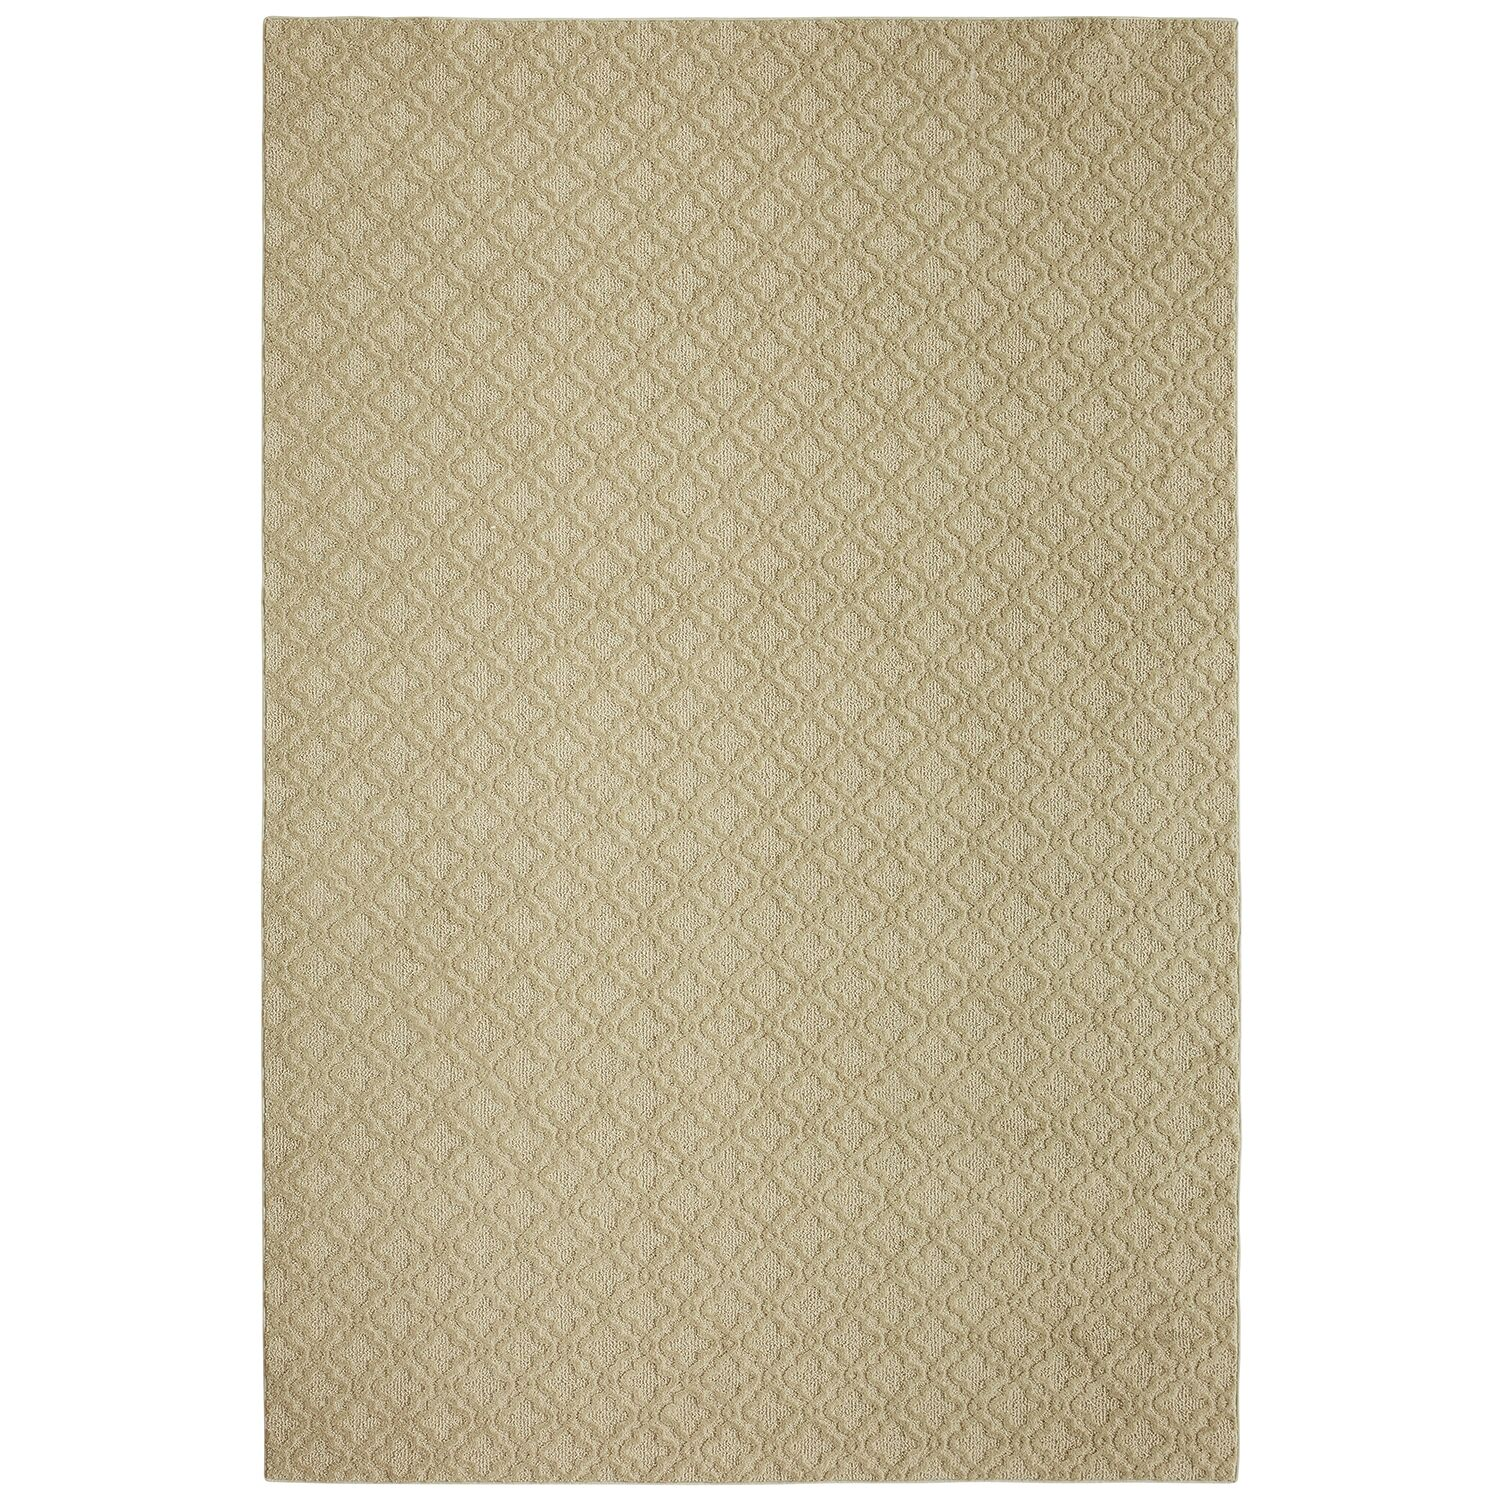 Bettie New Spring Hand-Tufted Neutral Area Rug Rug Size: Rectangle 6' x 9'